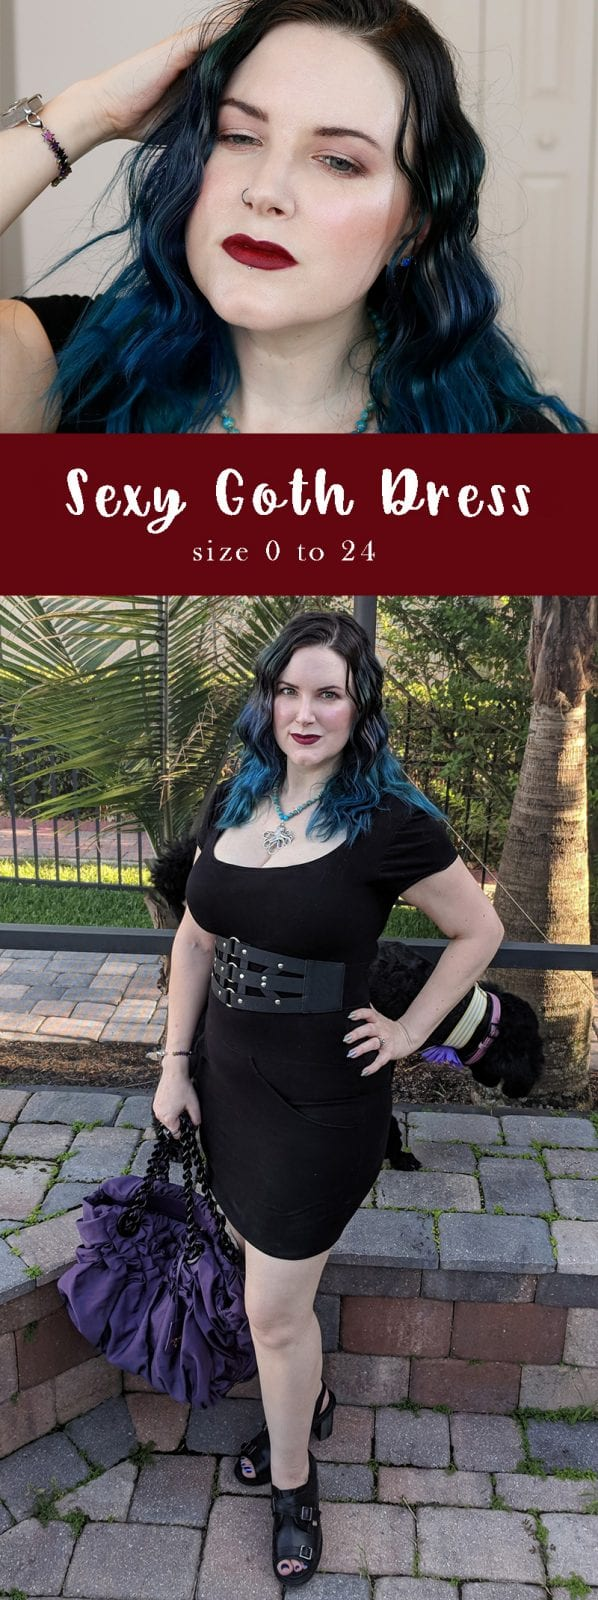 Goth Dress - An affordable, sexy dress available in size 0 to 24, custom made to your measurements. And did I mention it has pockets? #goth #gothicfashion #plussize